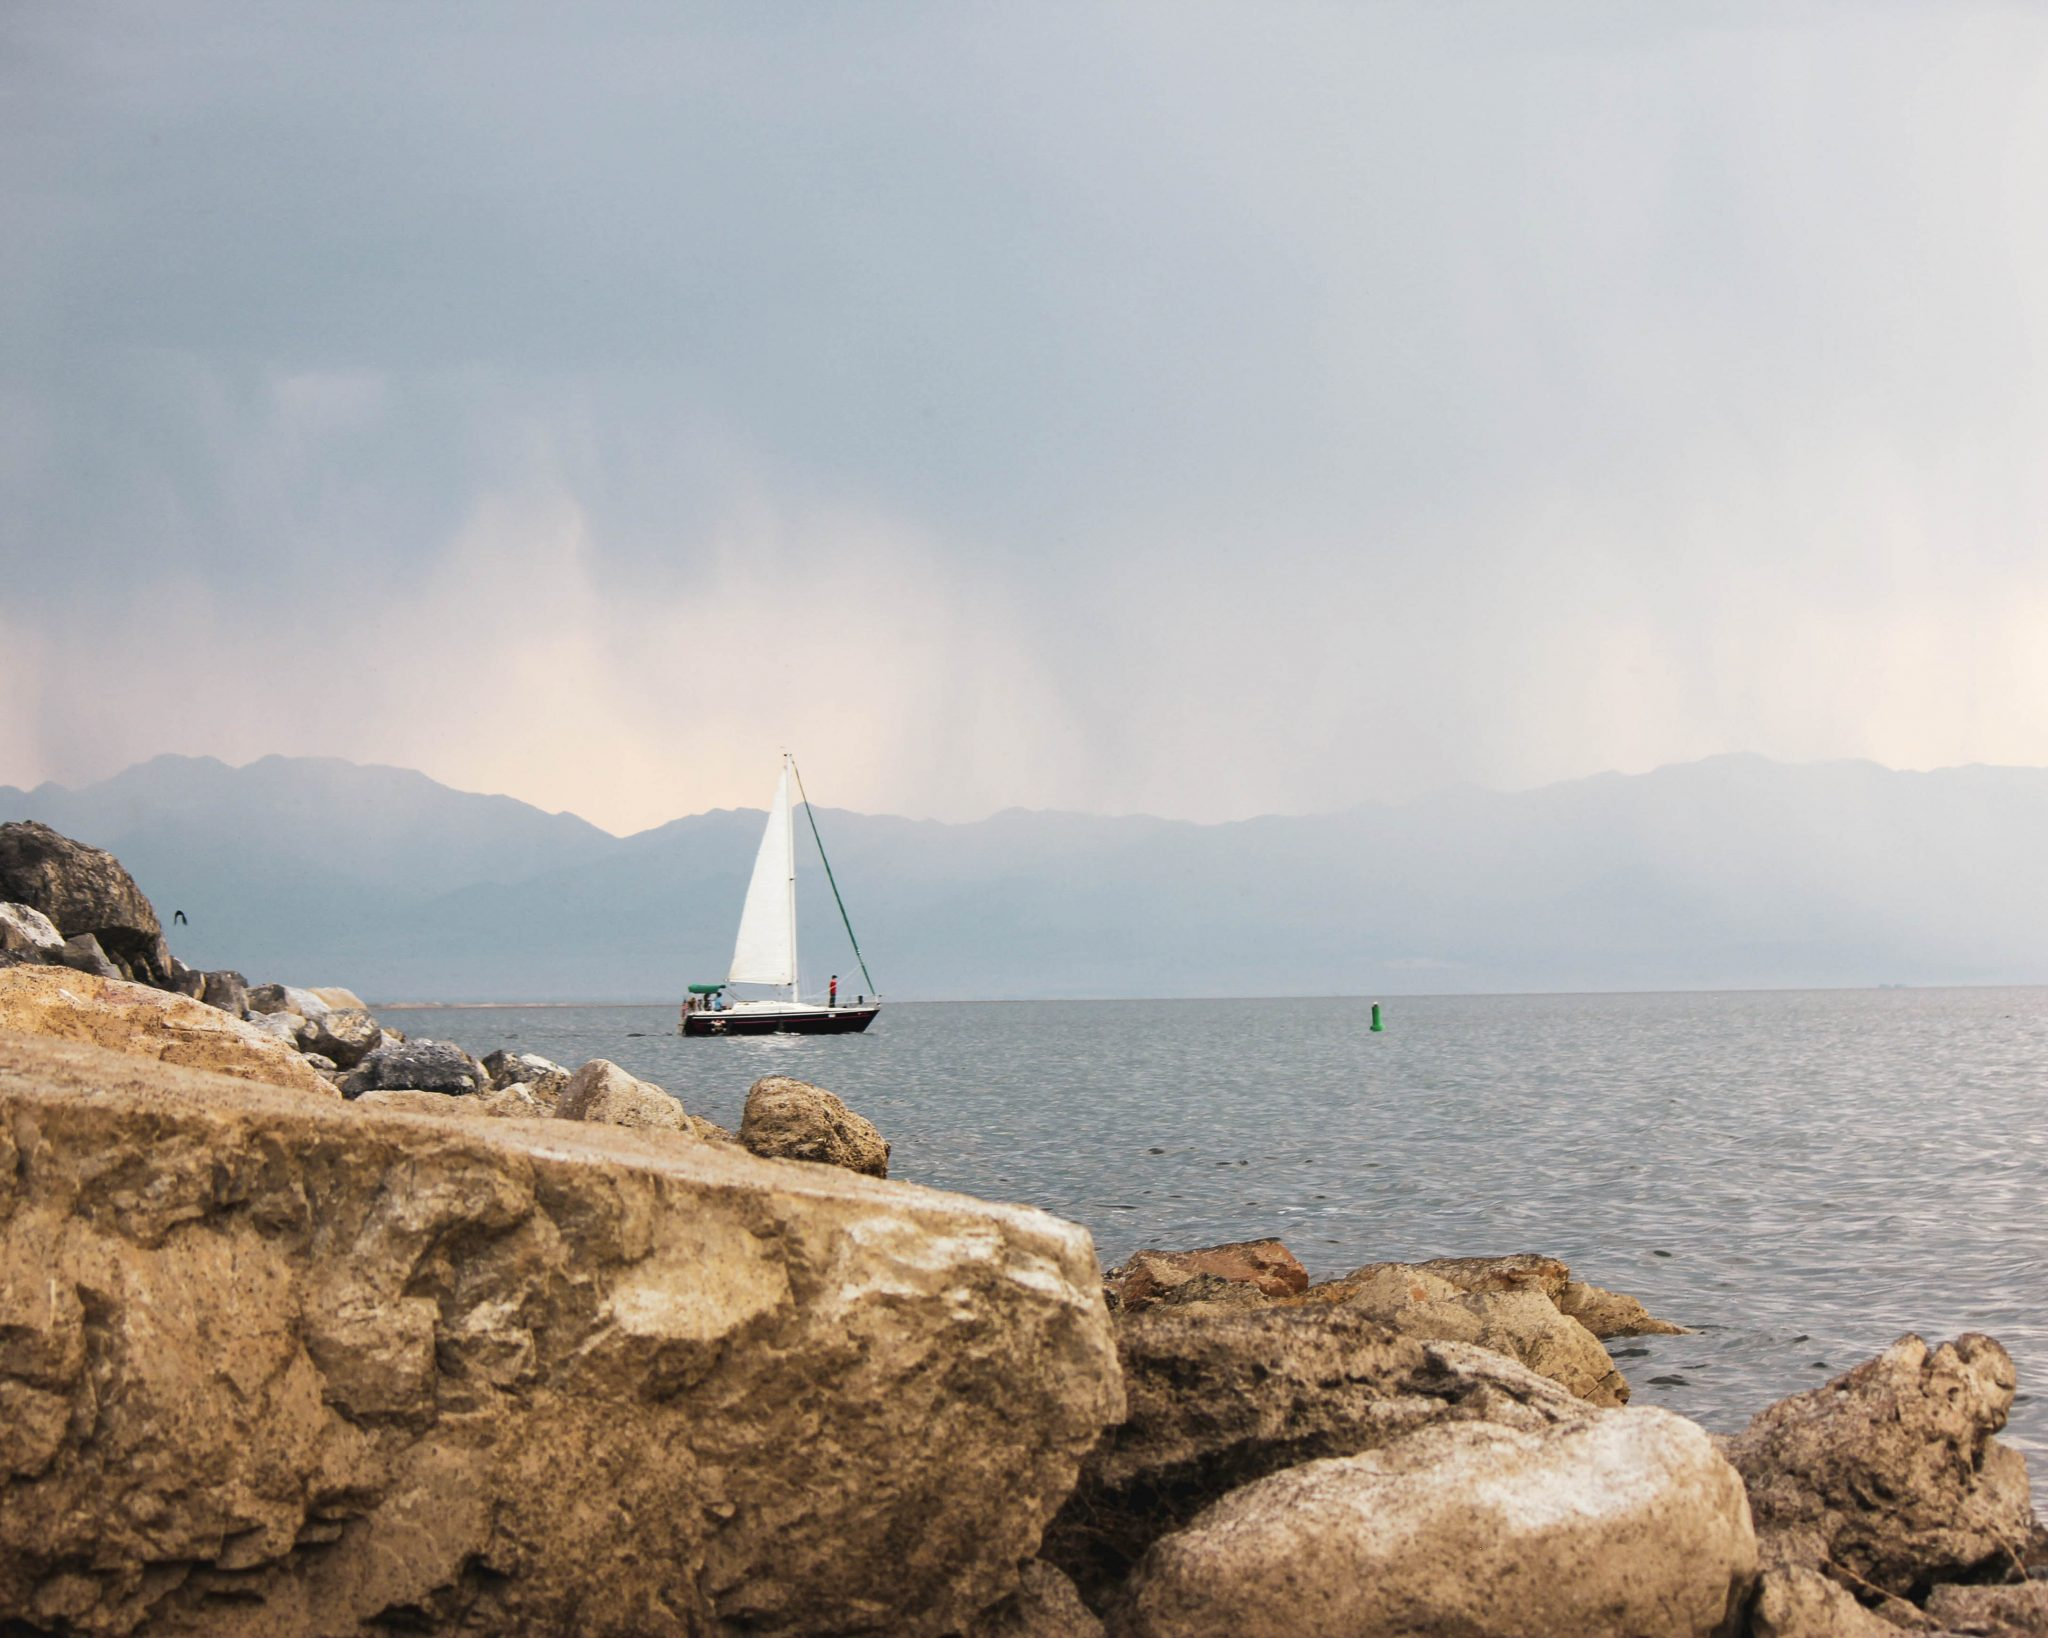 A view of a sailboat in the great salt lake from the rocky beach